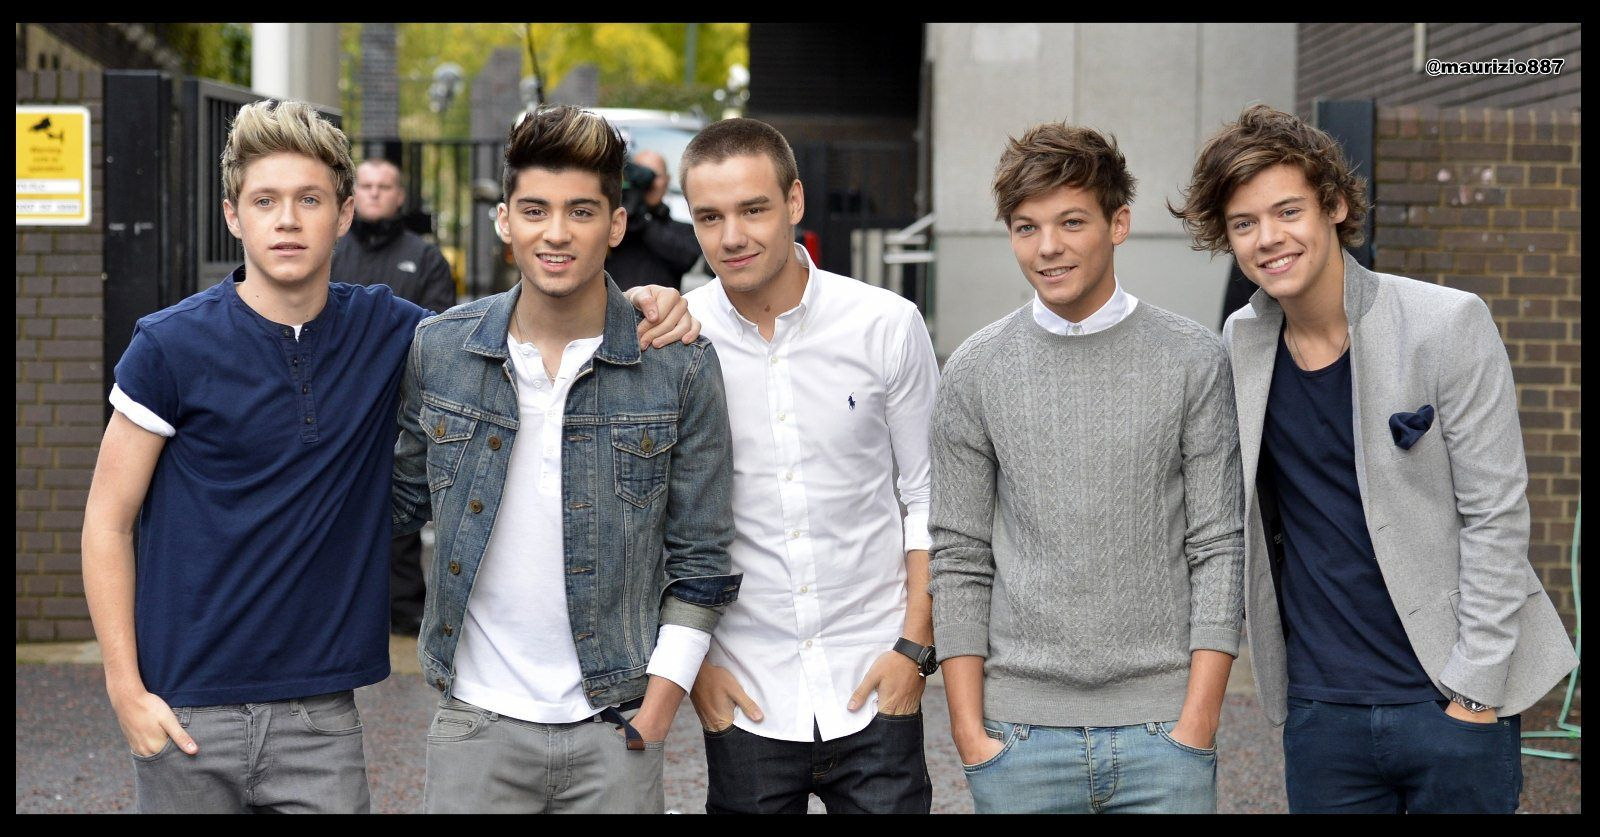 One Direction Wallpaper One Direction Photos One Direction Photoshoot One Direction Pictures